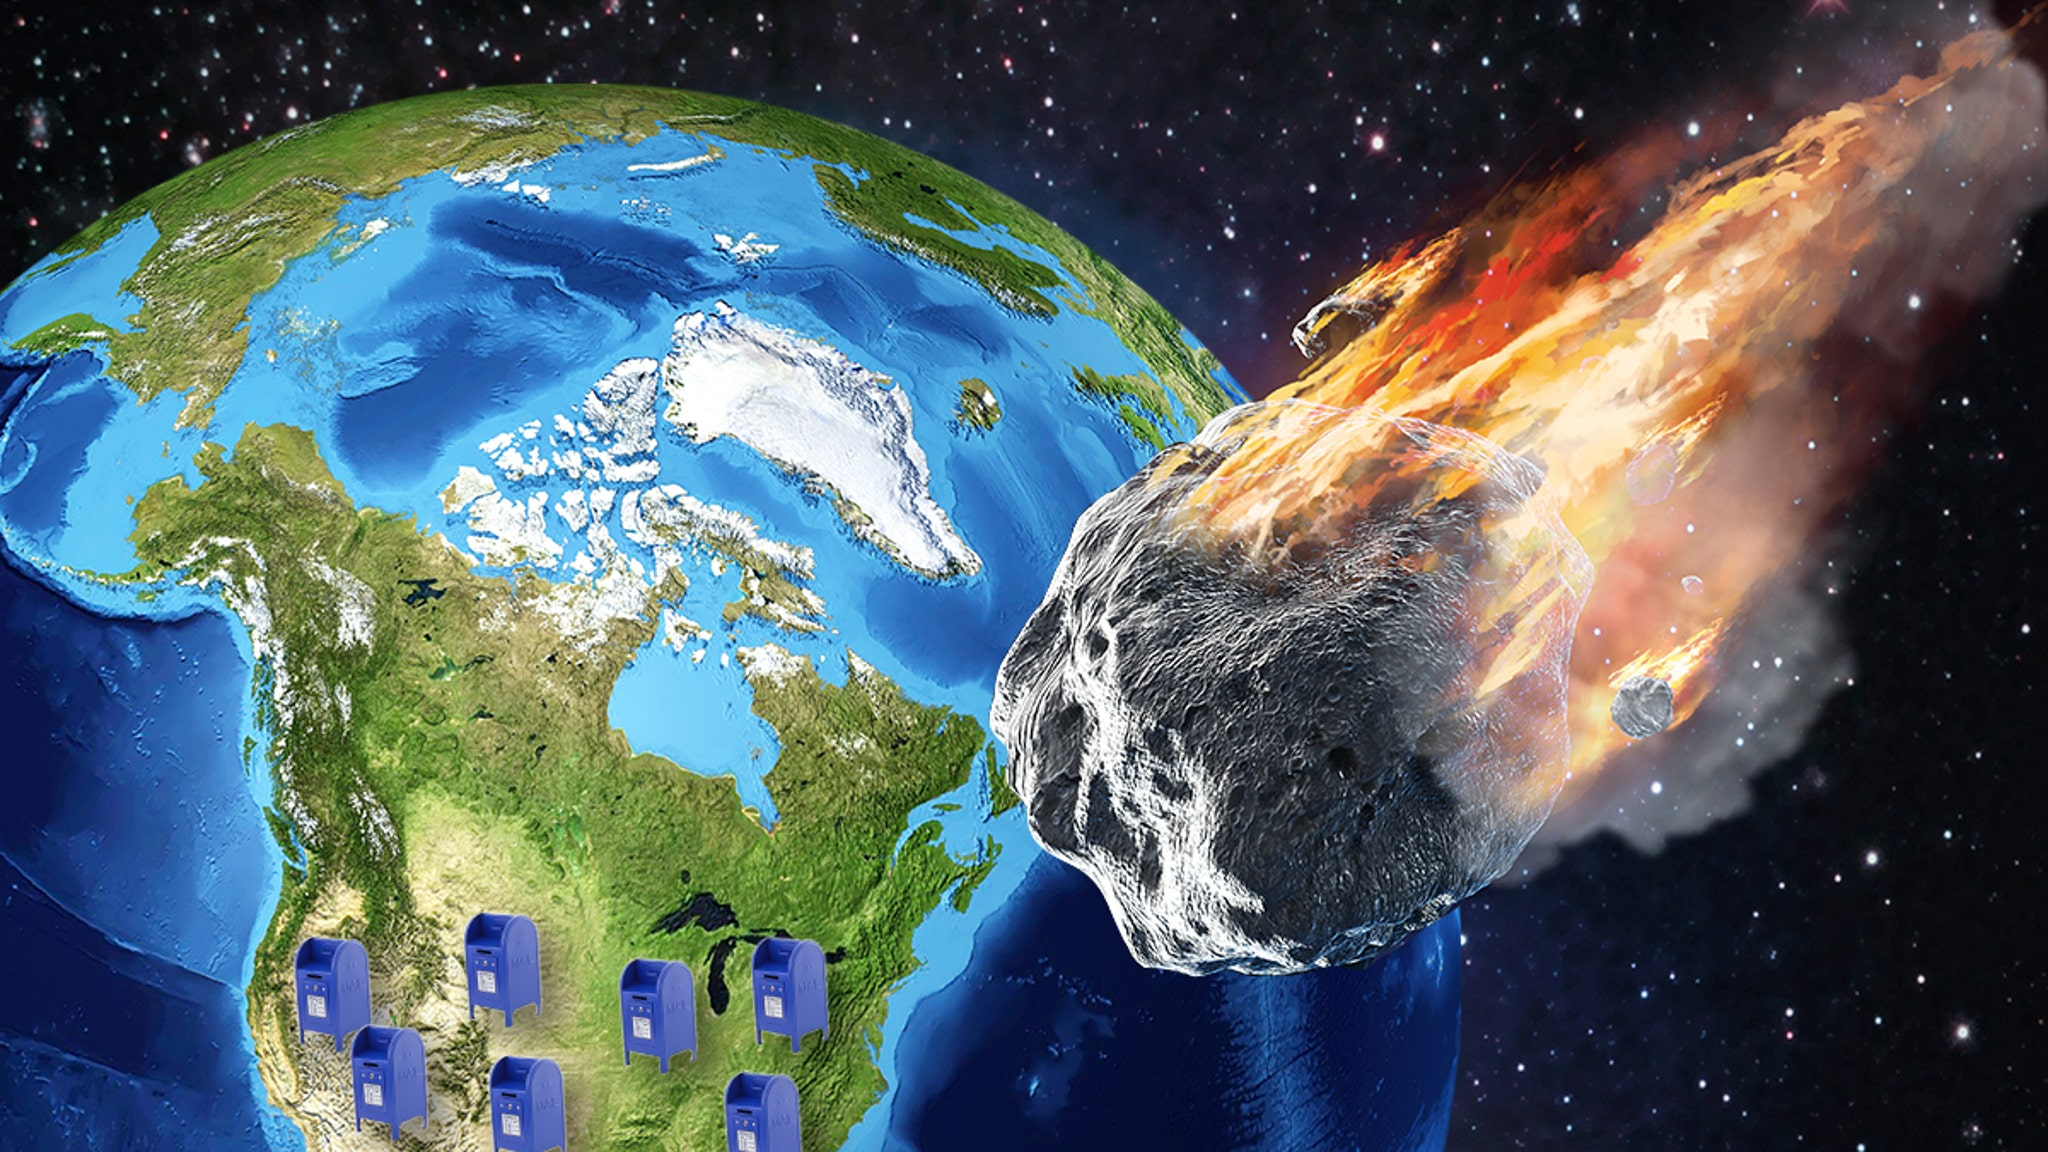 NASA Warning Asteroid Could Hit the U.S. ... 1 Day Before Election